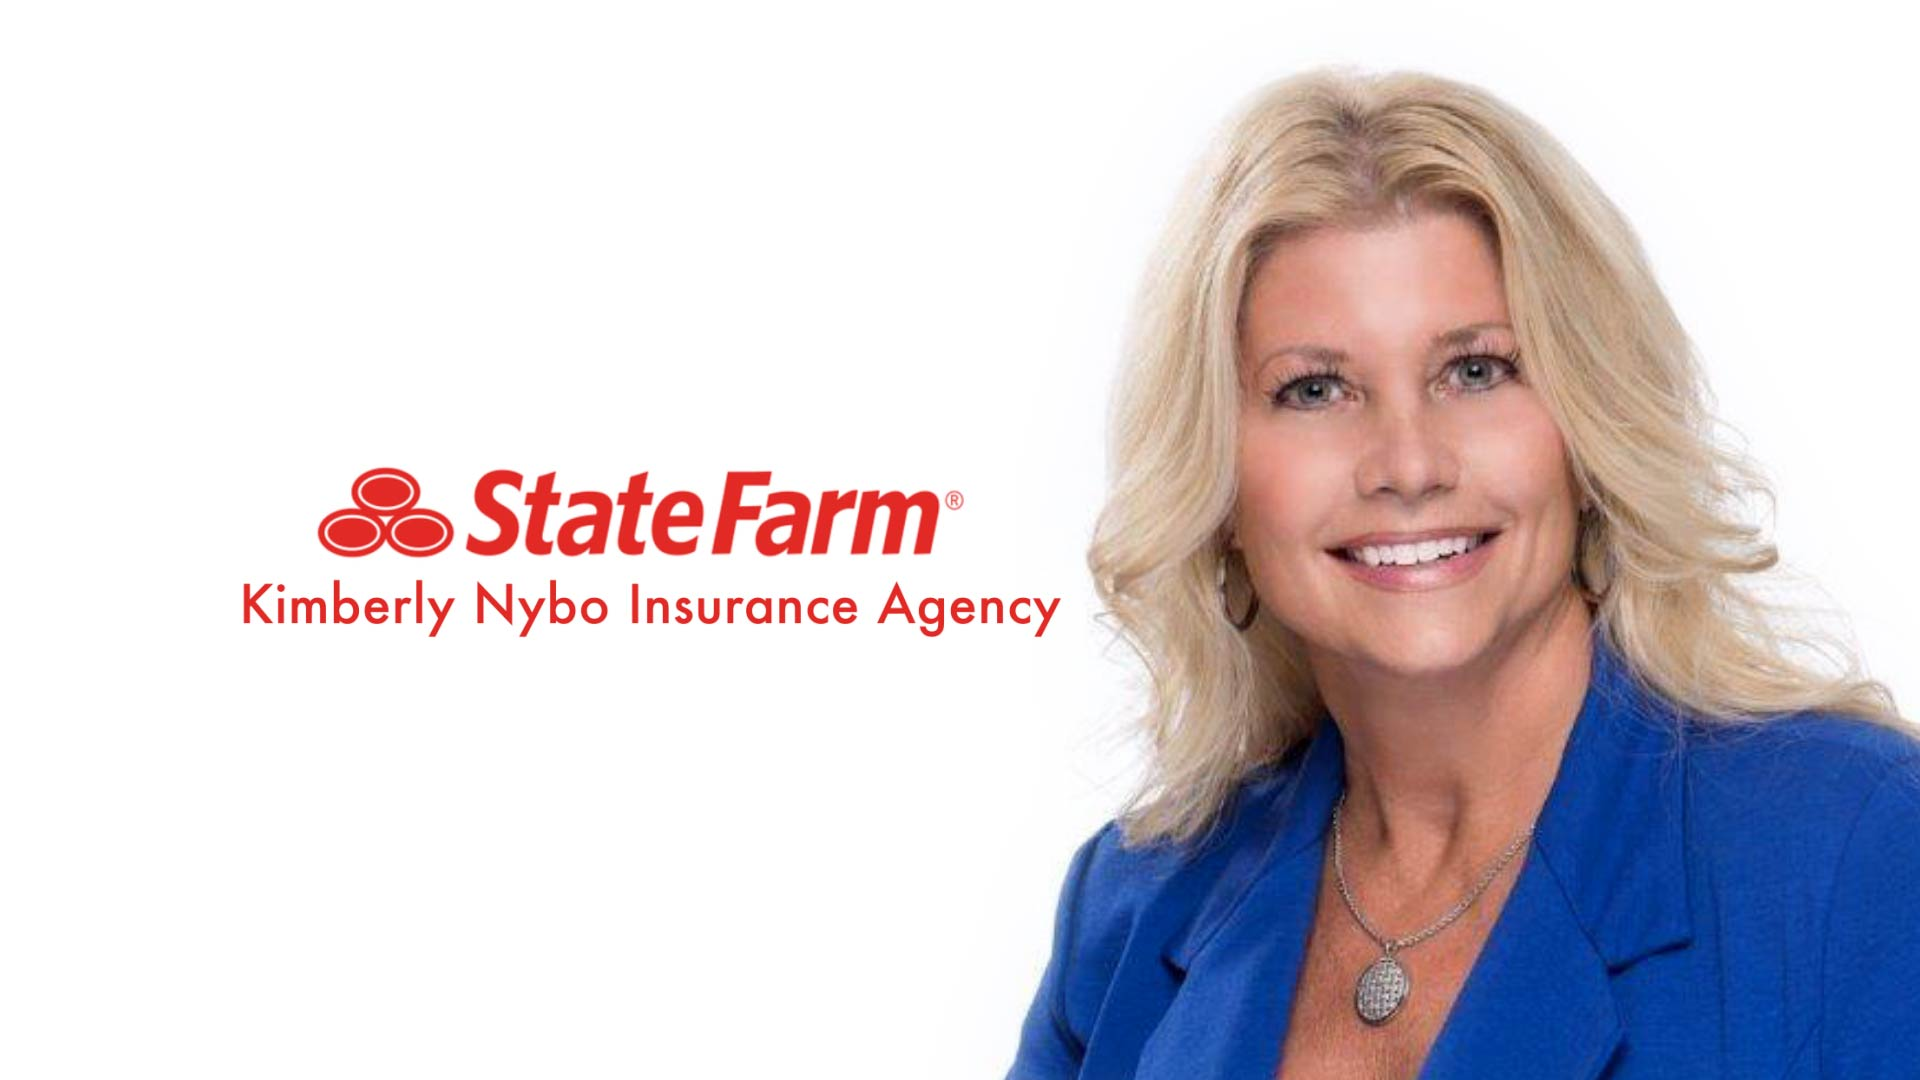 Kimberly Nybo Insurance Agency